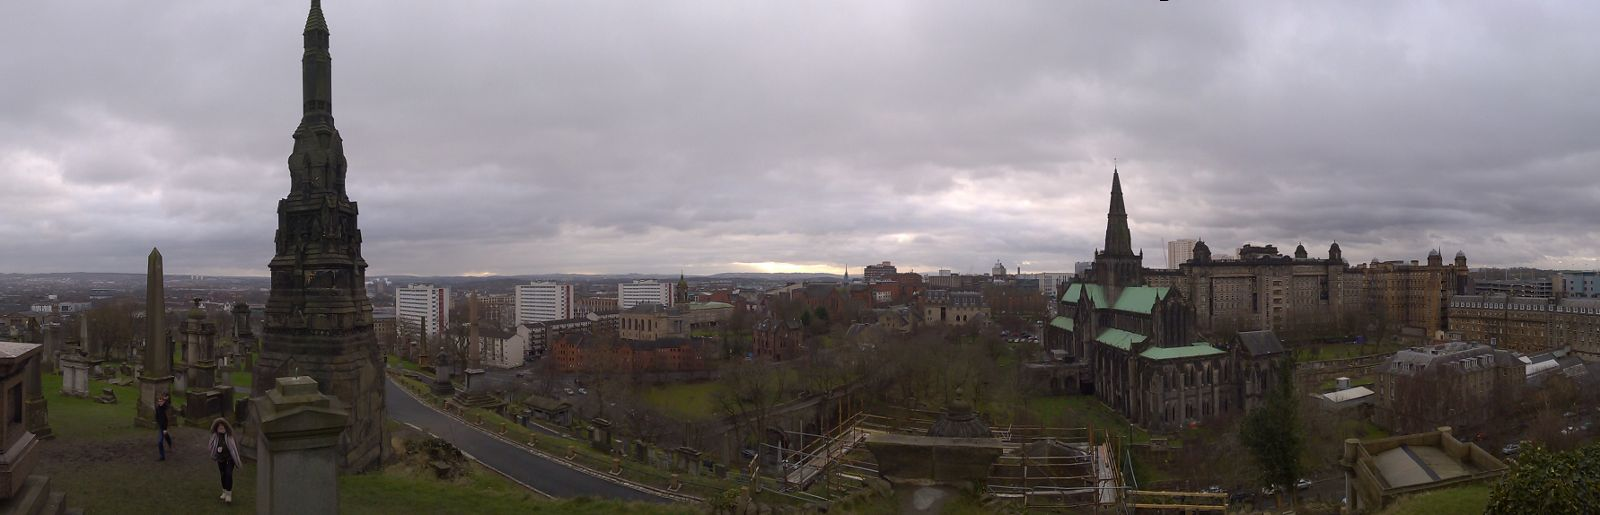 Panorama of Glasgow from the Necropolis